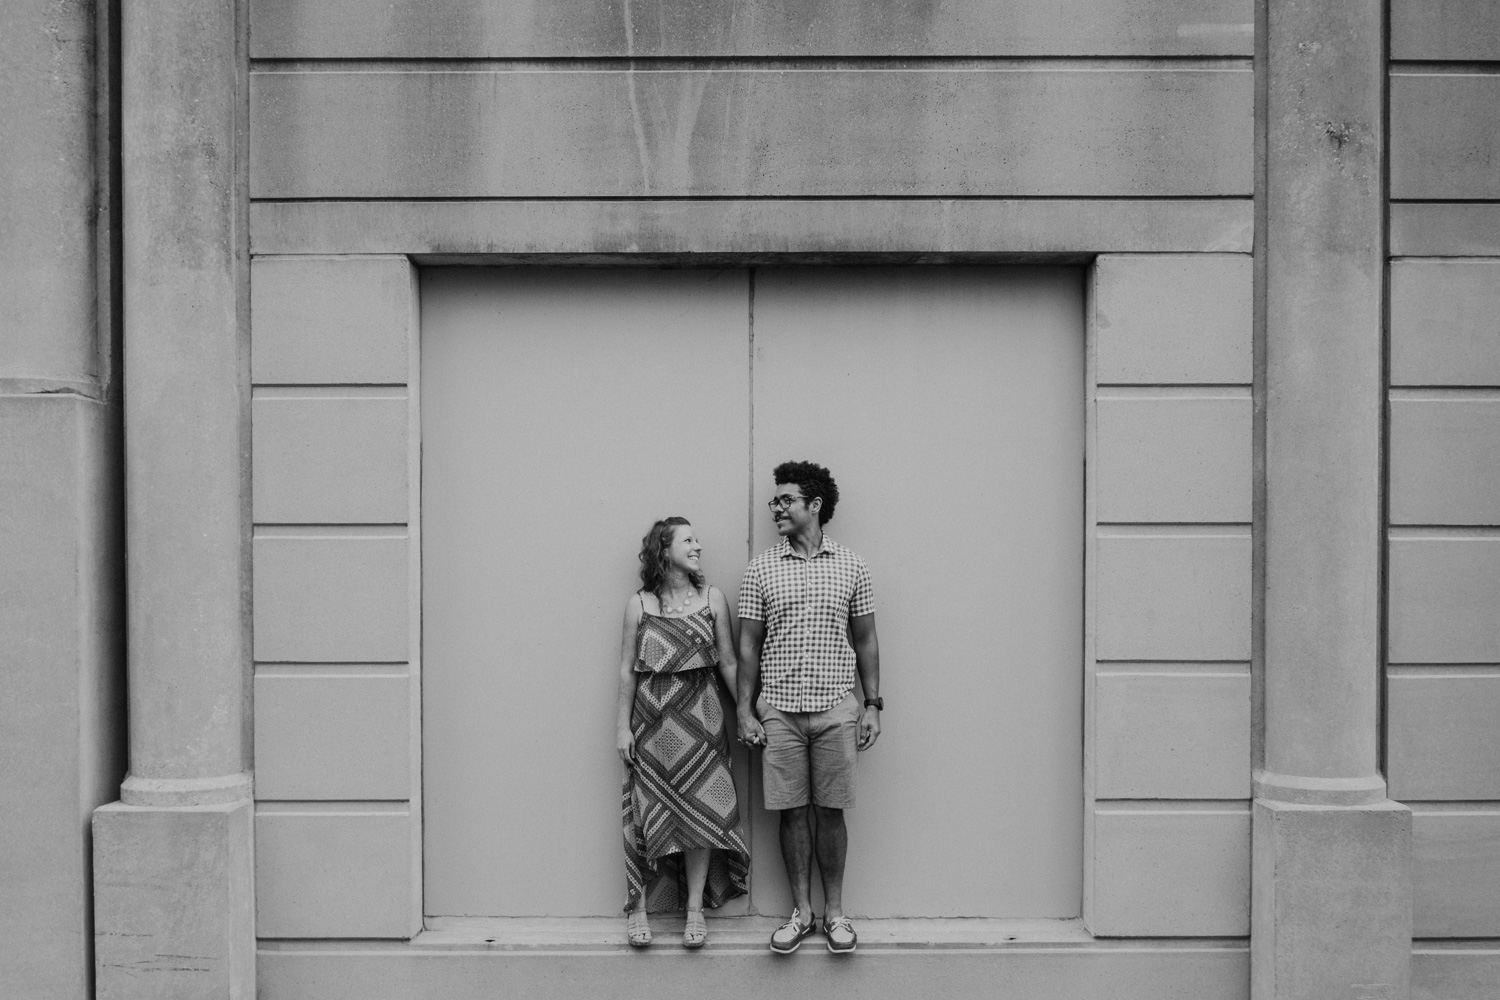 couple stands on a ledge on a concrete wall while looking at one another